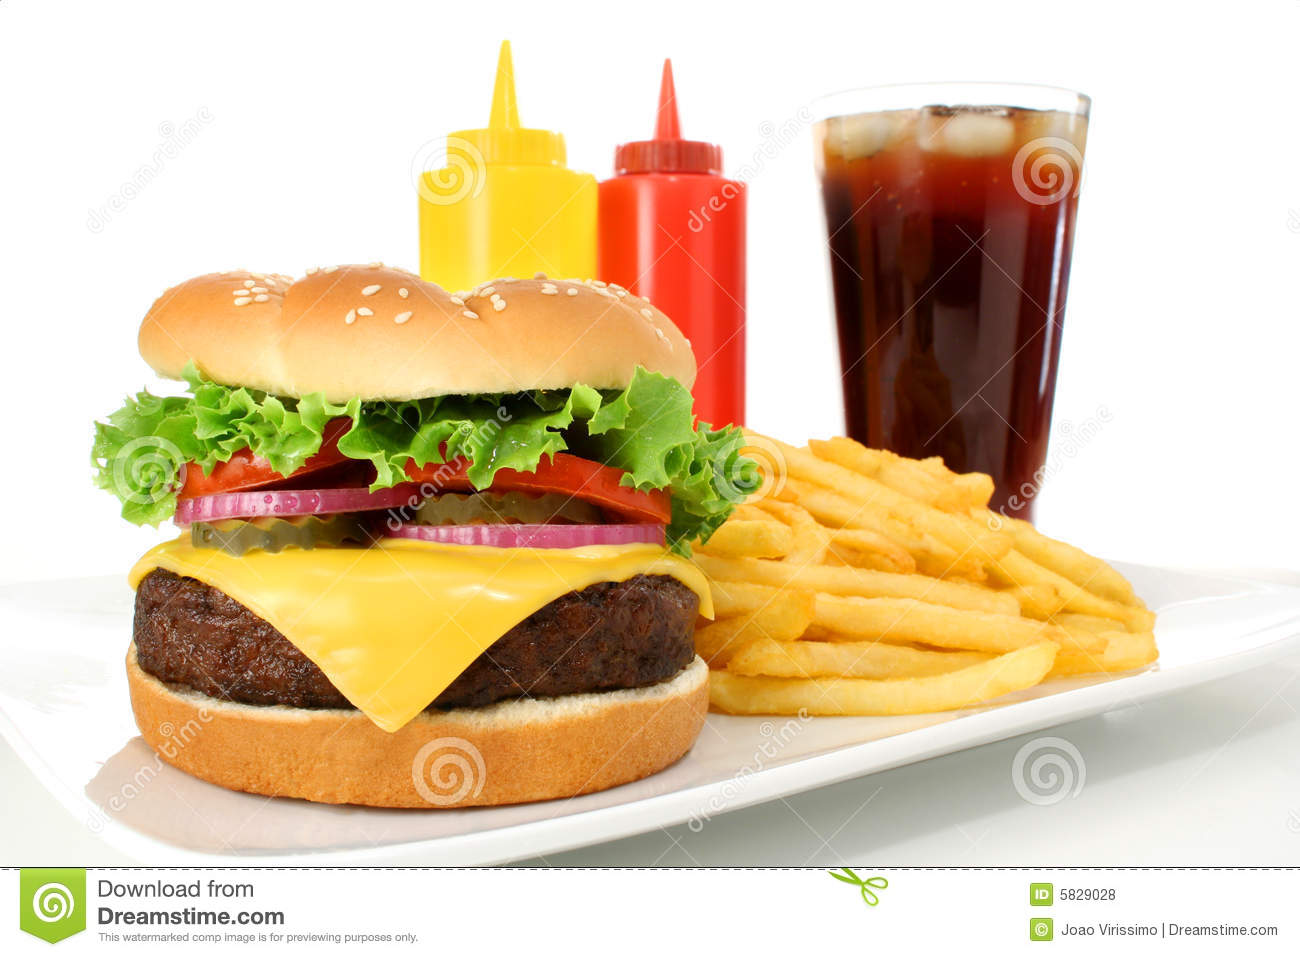 fast food meal including a cheeseburger hamburger, french fries and